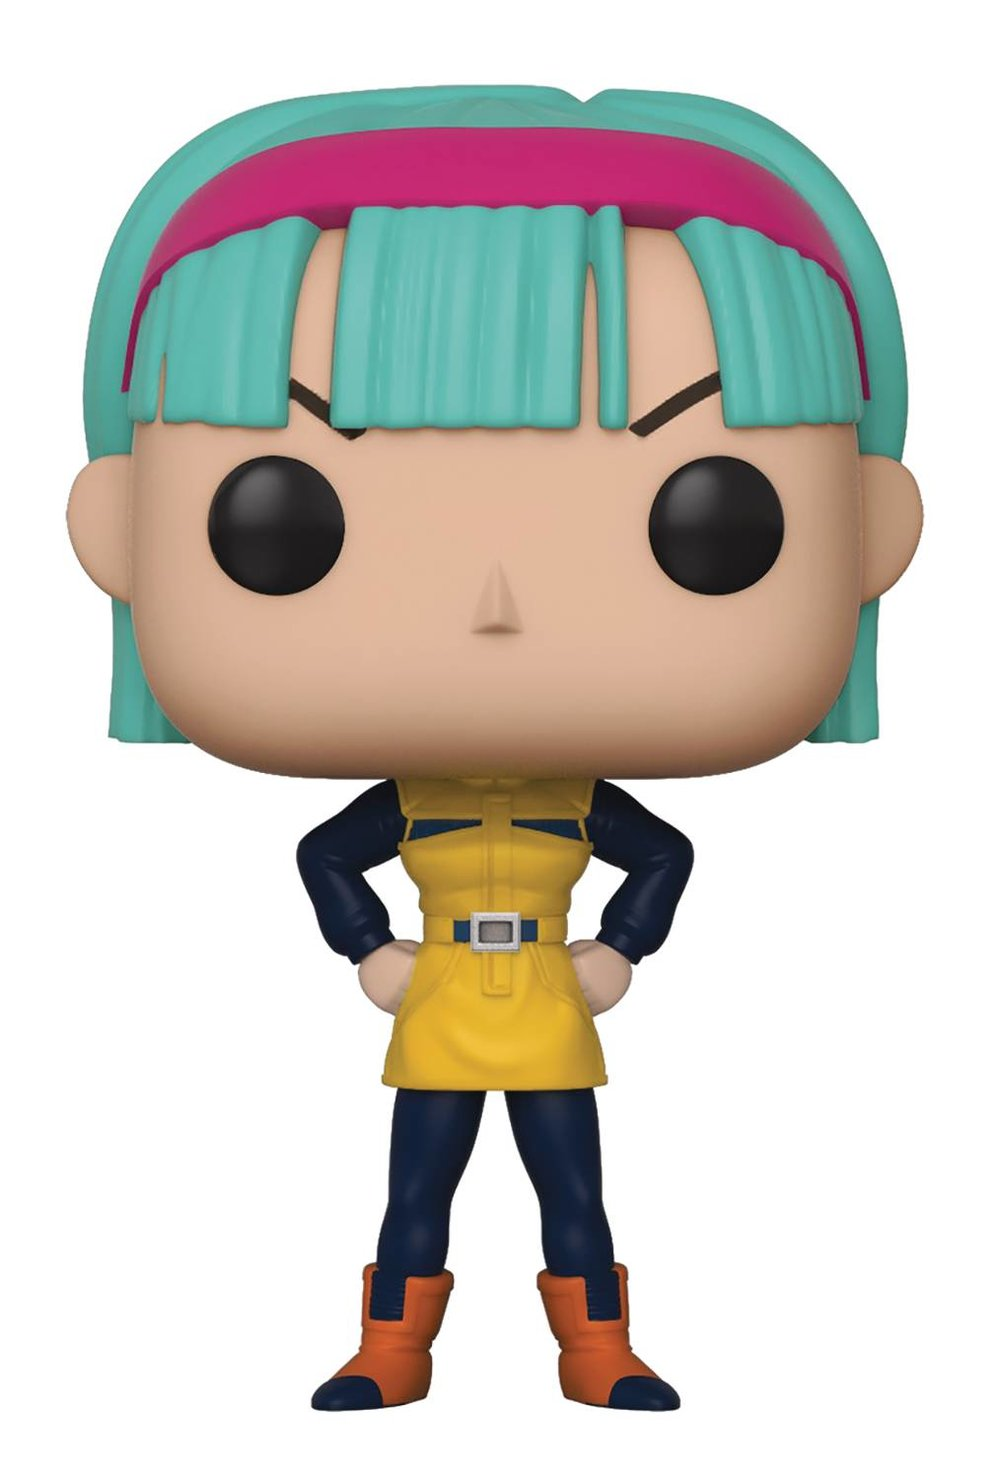 POP ANIMATION DRAGONBALL Z BULMA VIN FIG.jpg